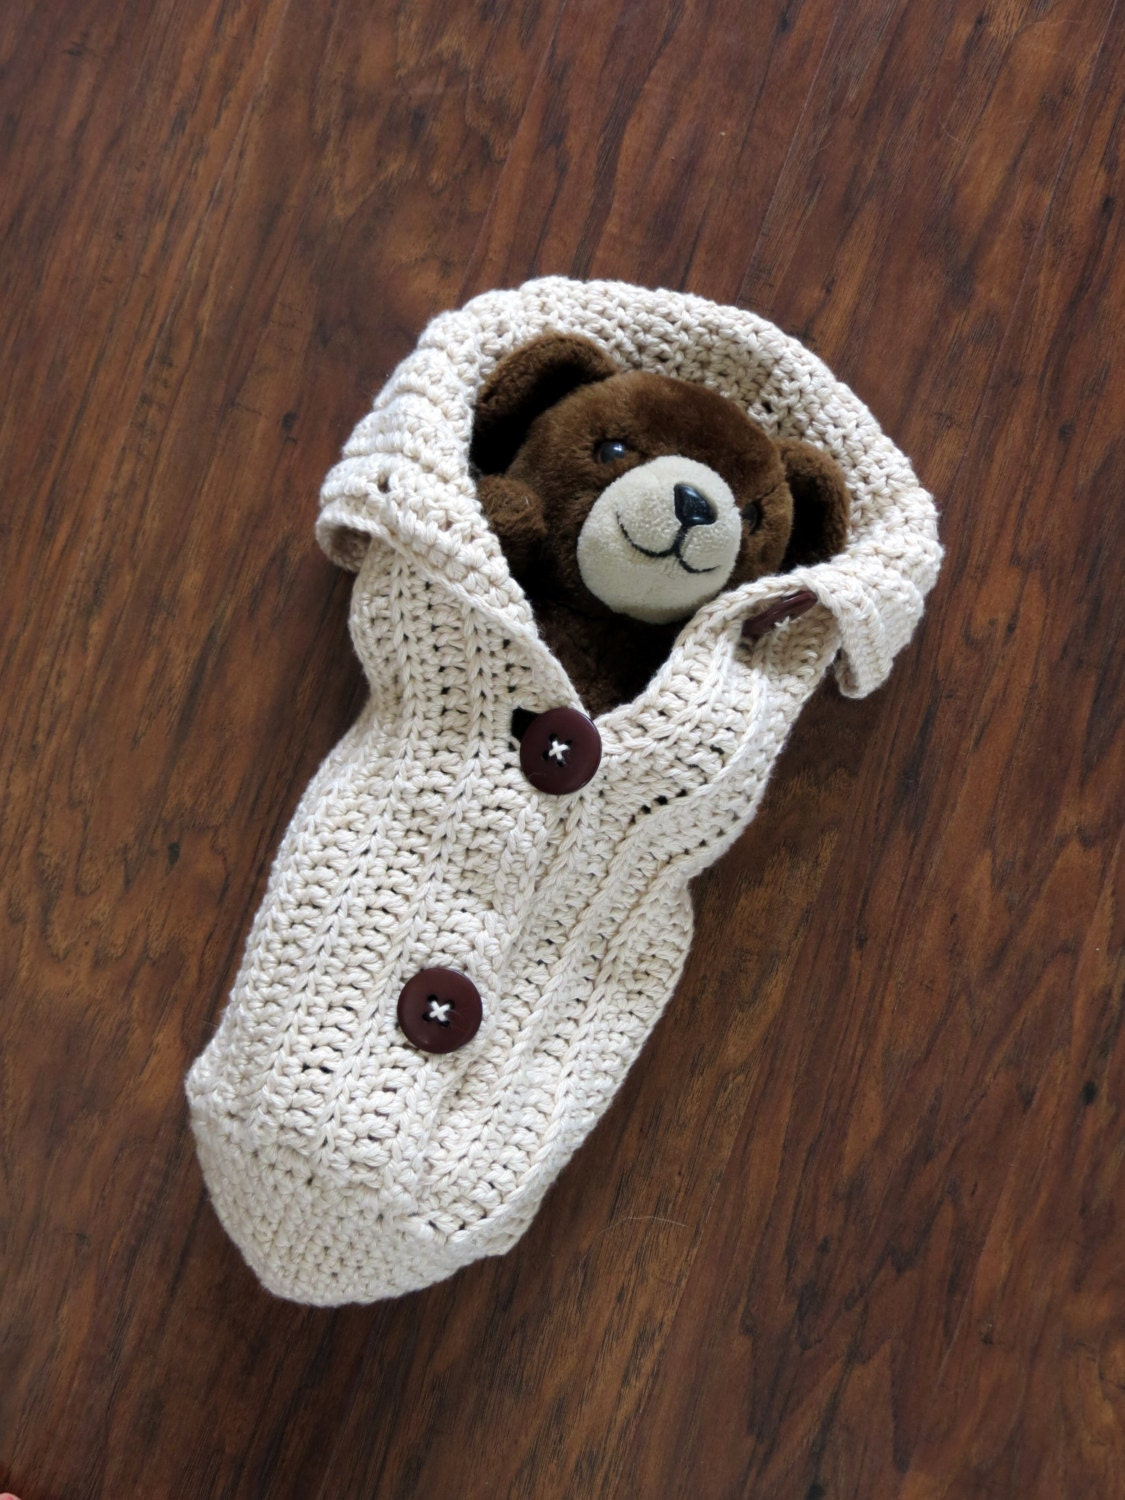 Crochet Cocoon Pattern Photo Prop EASY CROCHET PATTERN